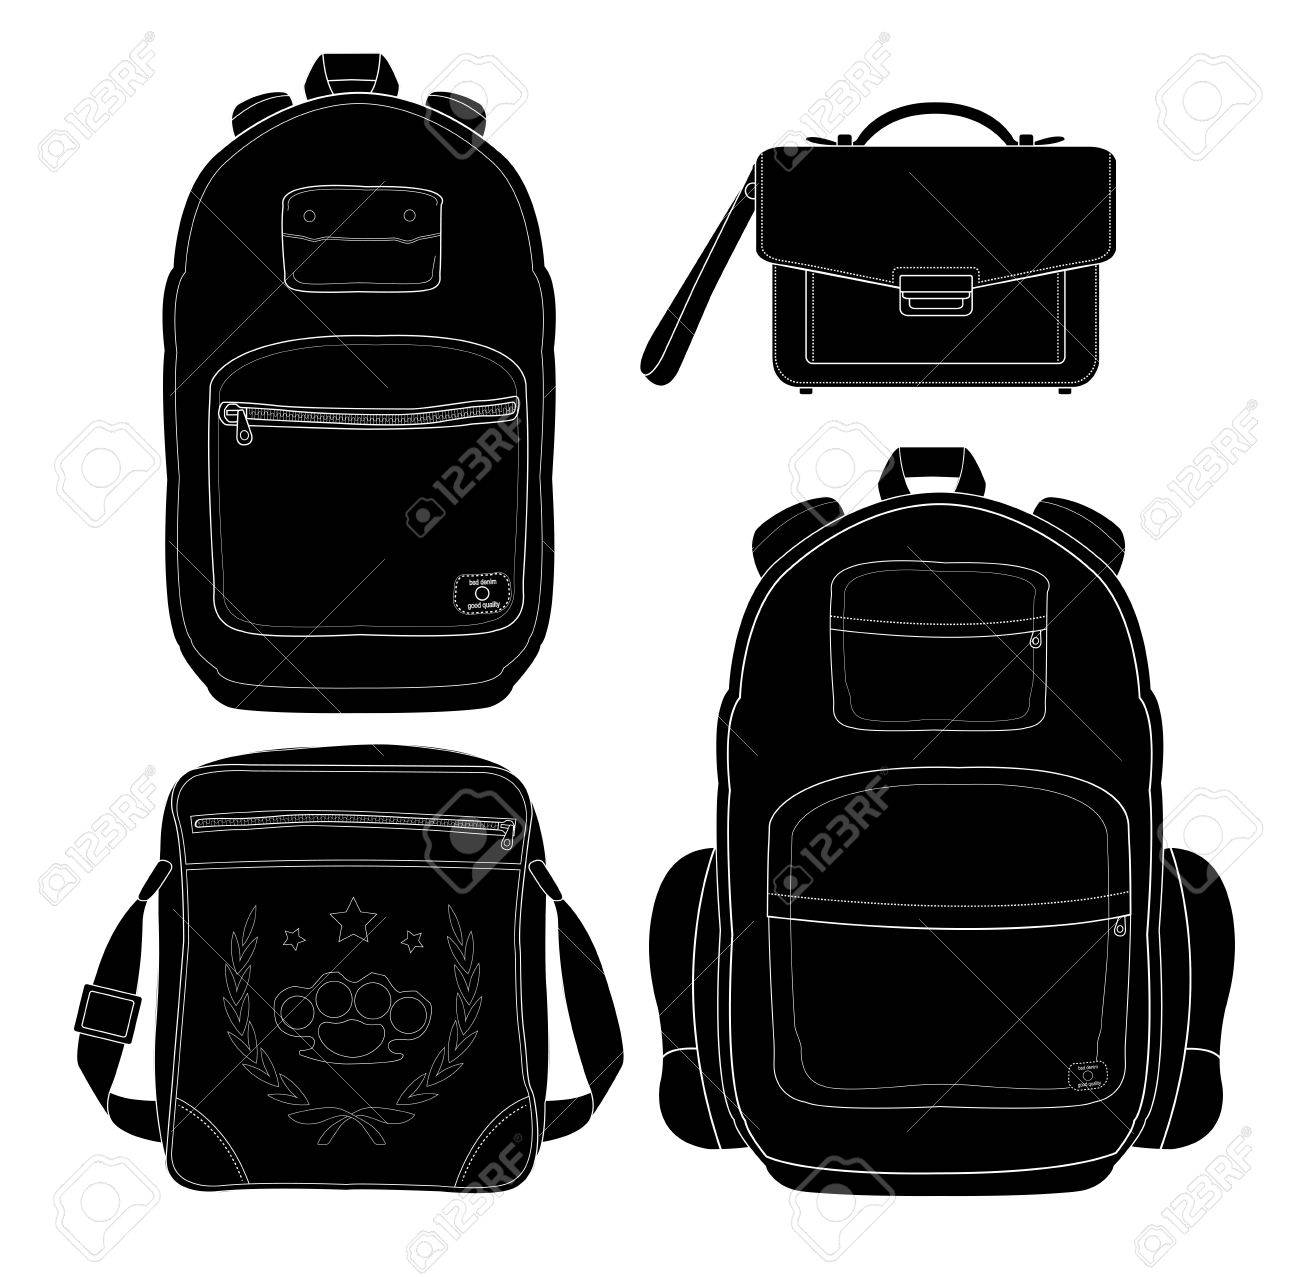 801f732c1e8 Set of 4 fashionable men bags  urban backpack, briefcase, shoulder bag,  travel